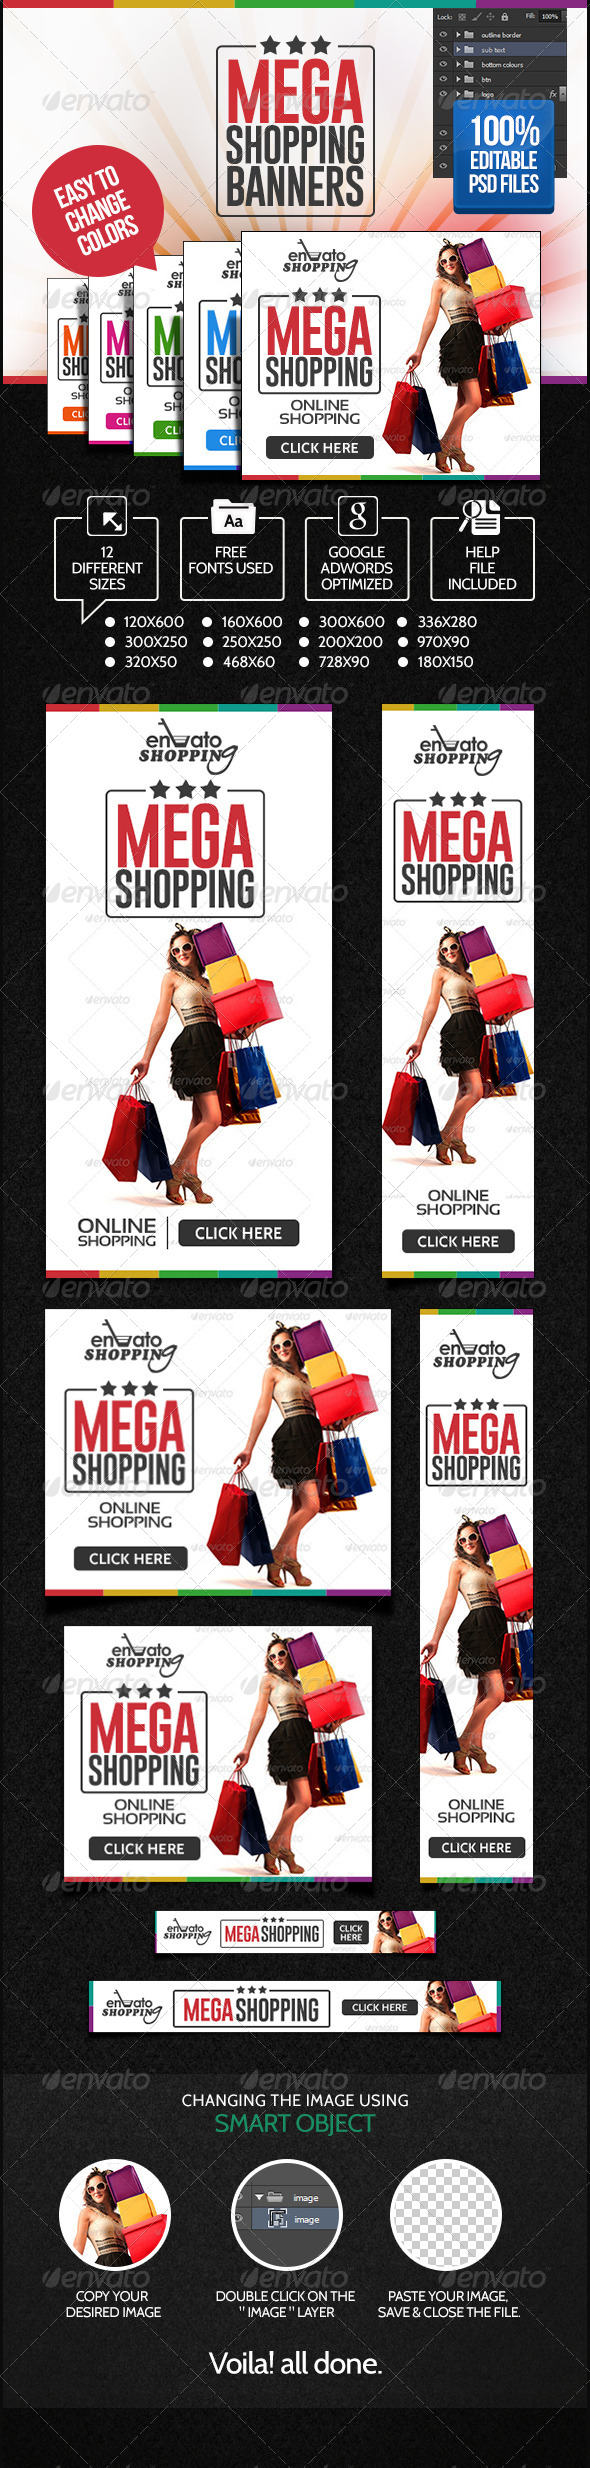 Online Shopping Banner Set - Banners & Ads Web Elements